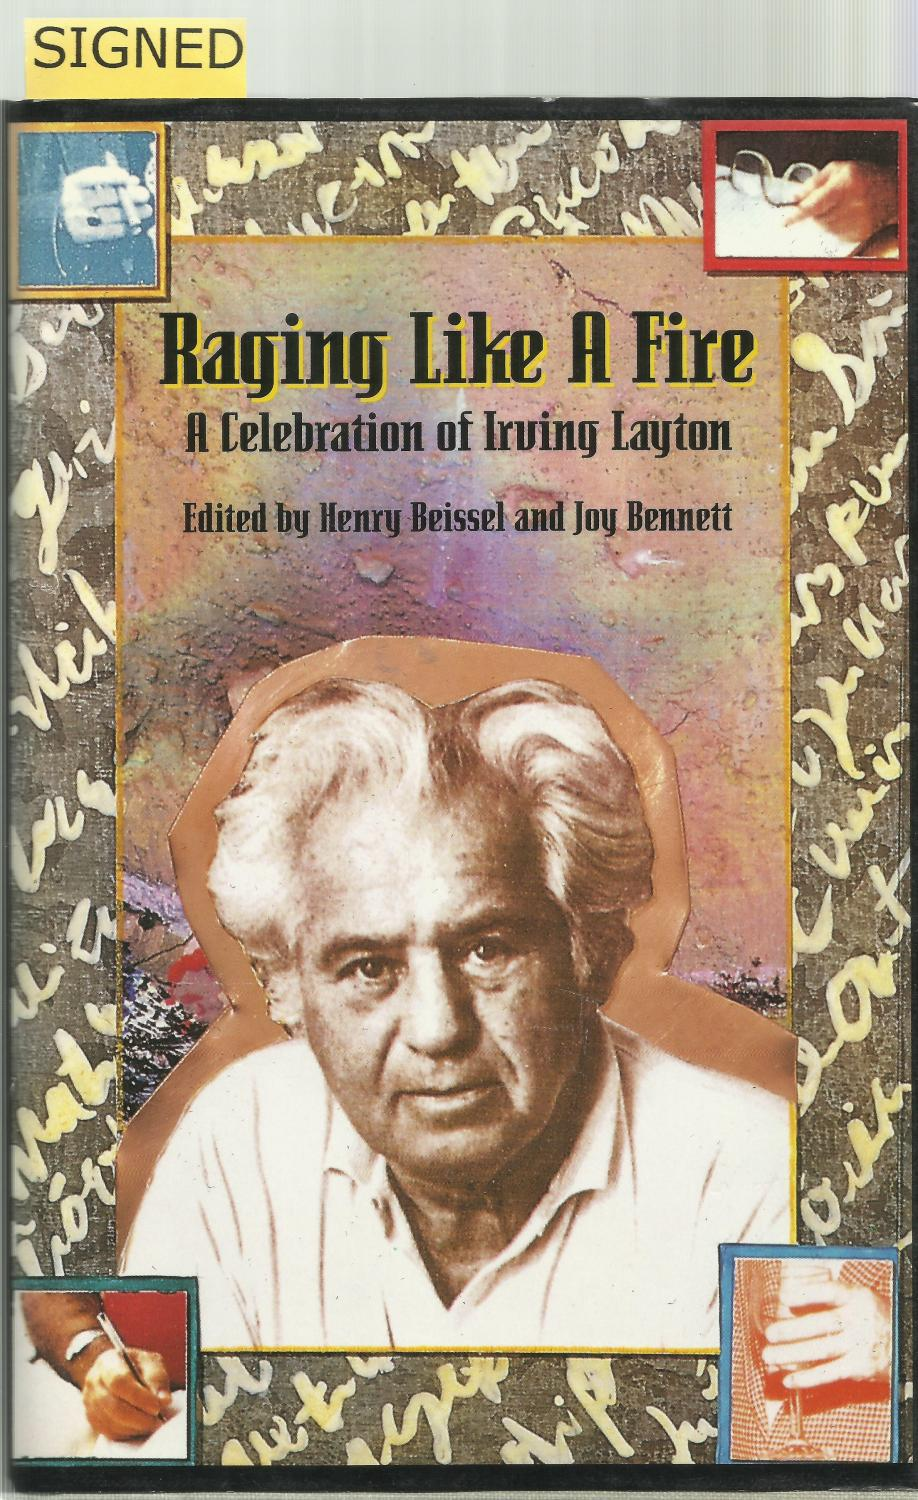 RAGING LIKE A FIRE: A Celebration of Irving Layton. - BEISSEL, Henry and Joy BENNETT.